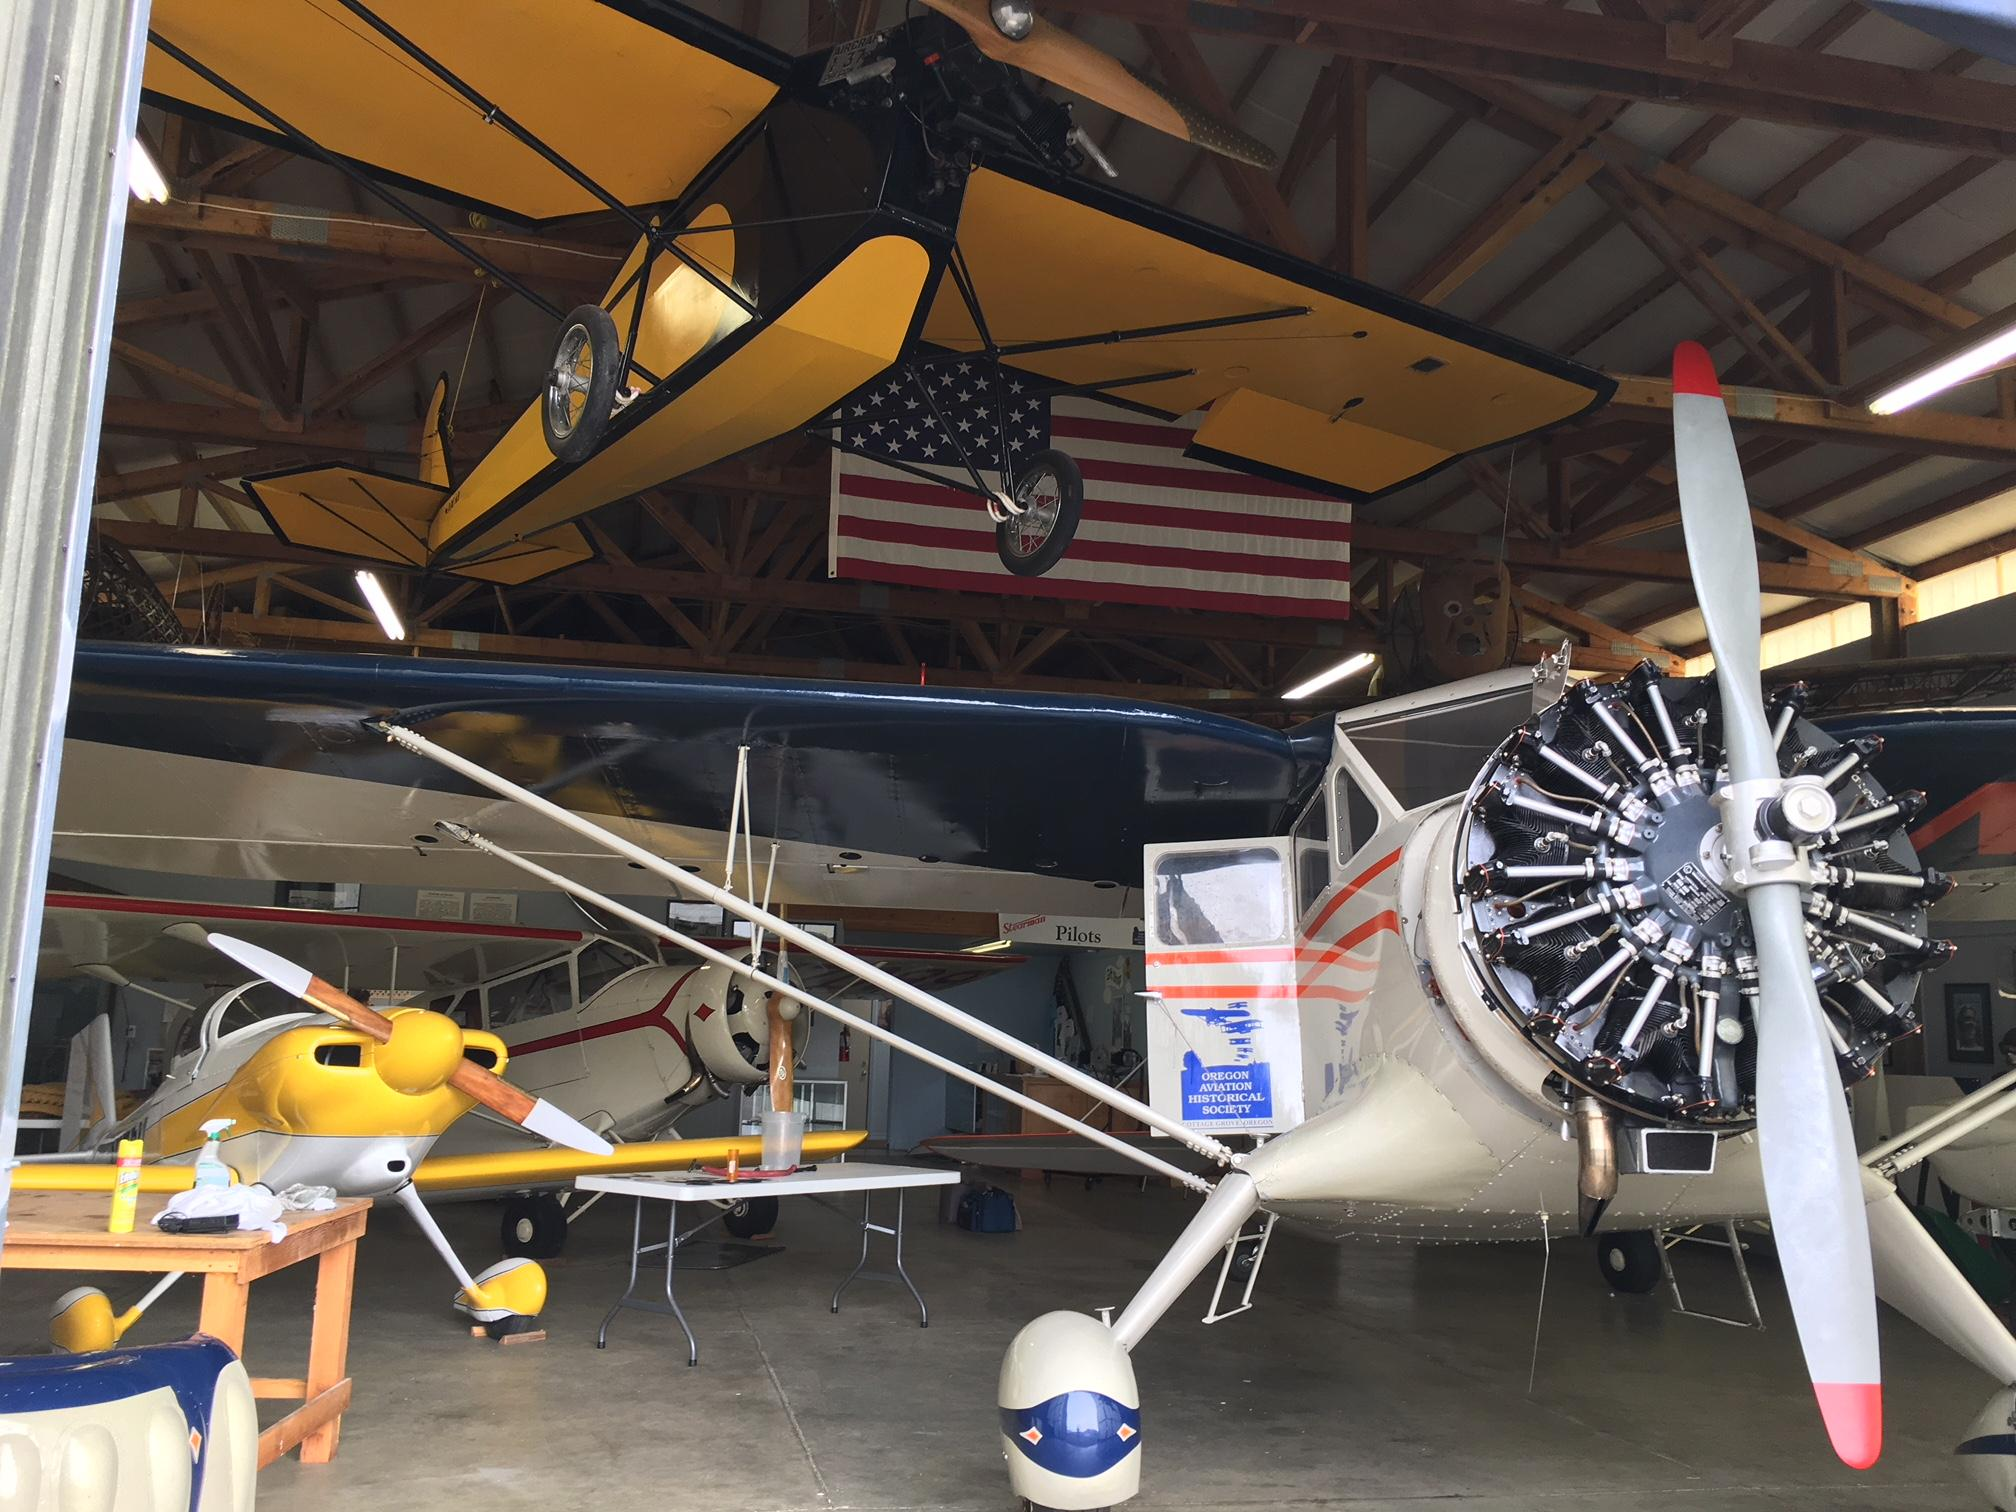 <p>The smoke hit the Oregon Aviation Historical Society in Cottage Grove especially hard. &quot;A couple of our guys turned around at the Columbia Gorge as that wall of smoke was just too much for them to get through,&quot; said Cassandra Barrong with the aviation society. (SBG)</p>